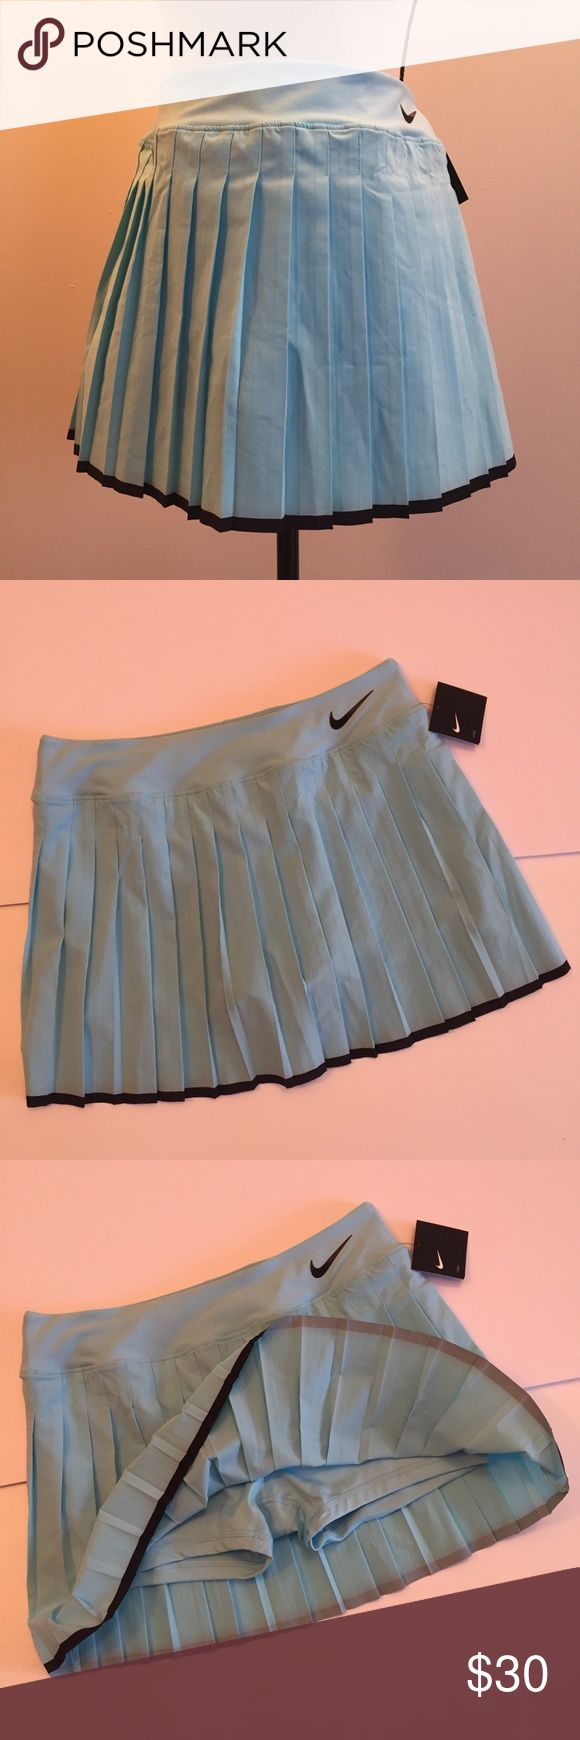 """Nike Winter Victory Skirt/ Skort Nike captures a tennis classic with this pleated Victory Skirt. This lightweight woven skirt features a flat elastic waistband, built-in compression short, all-around pleats, contrast trim at bottom hem, and a high density Swoosh at left hip. Color: Barely Green w/ Black. 14"""" length. New w/ tags. Nike Skirts"""